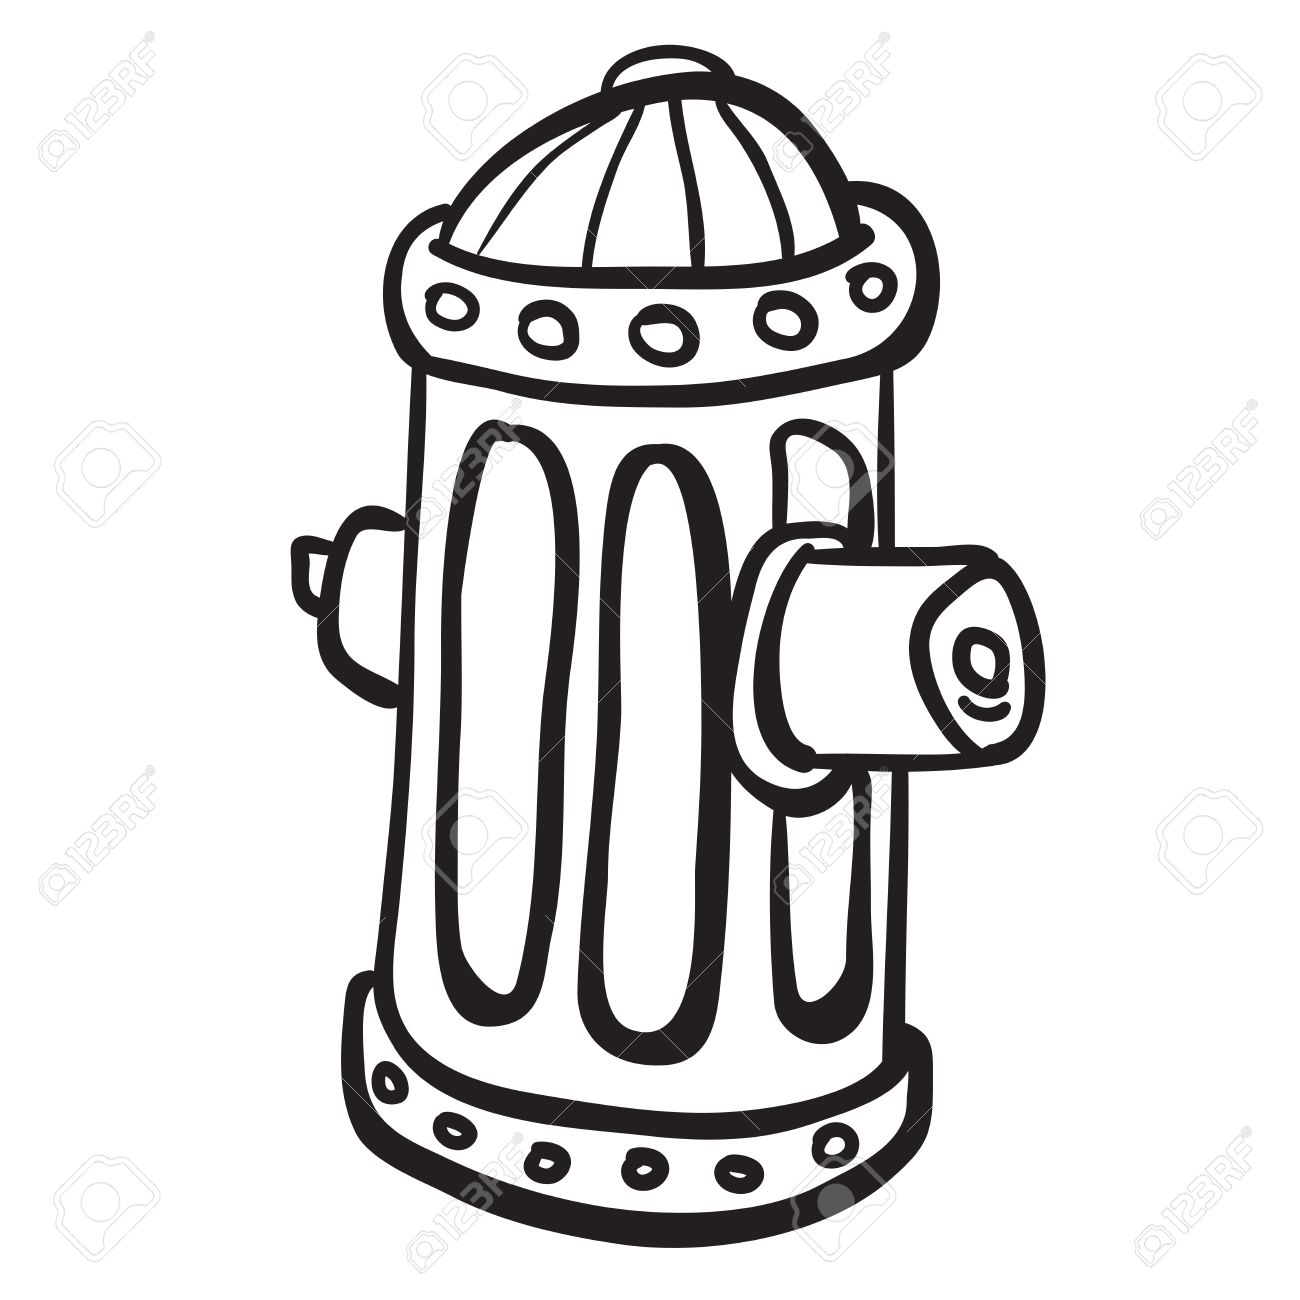 simple black and white fire hydrant cartoon.